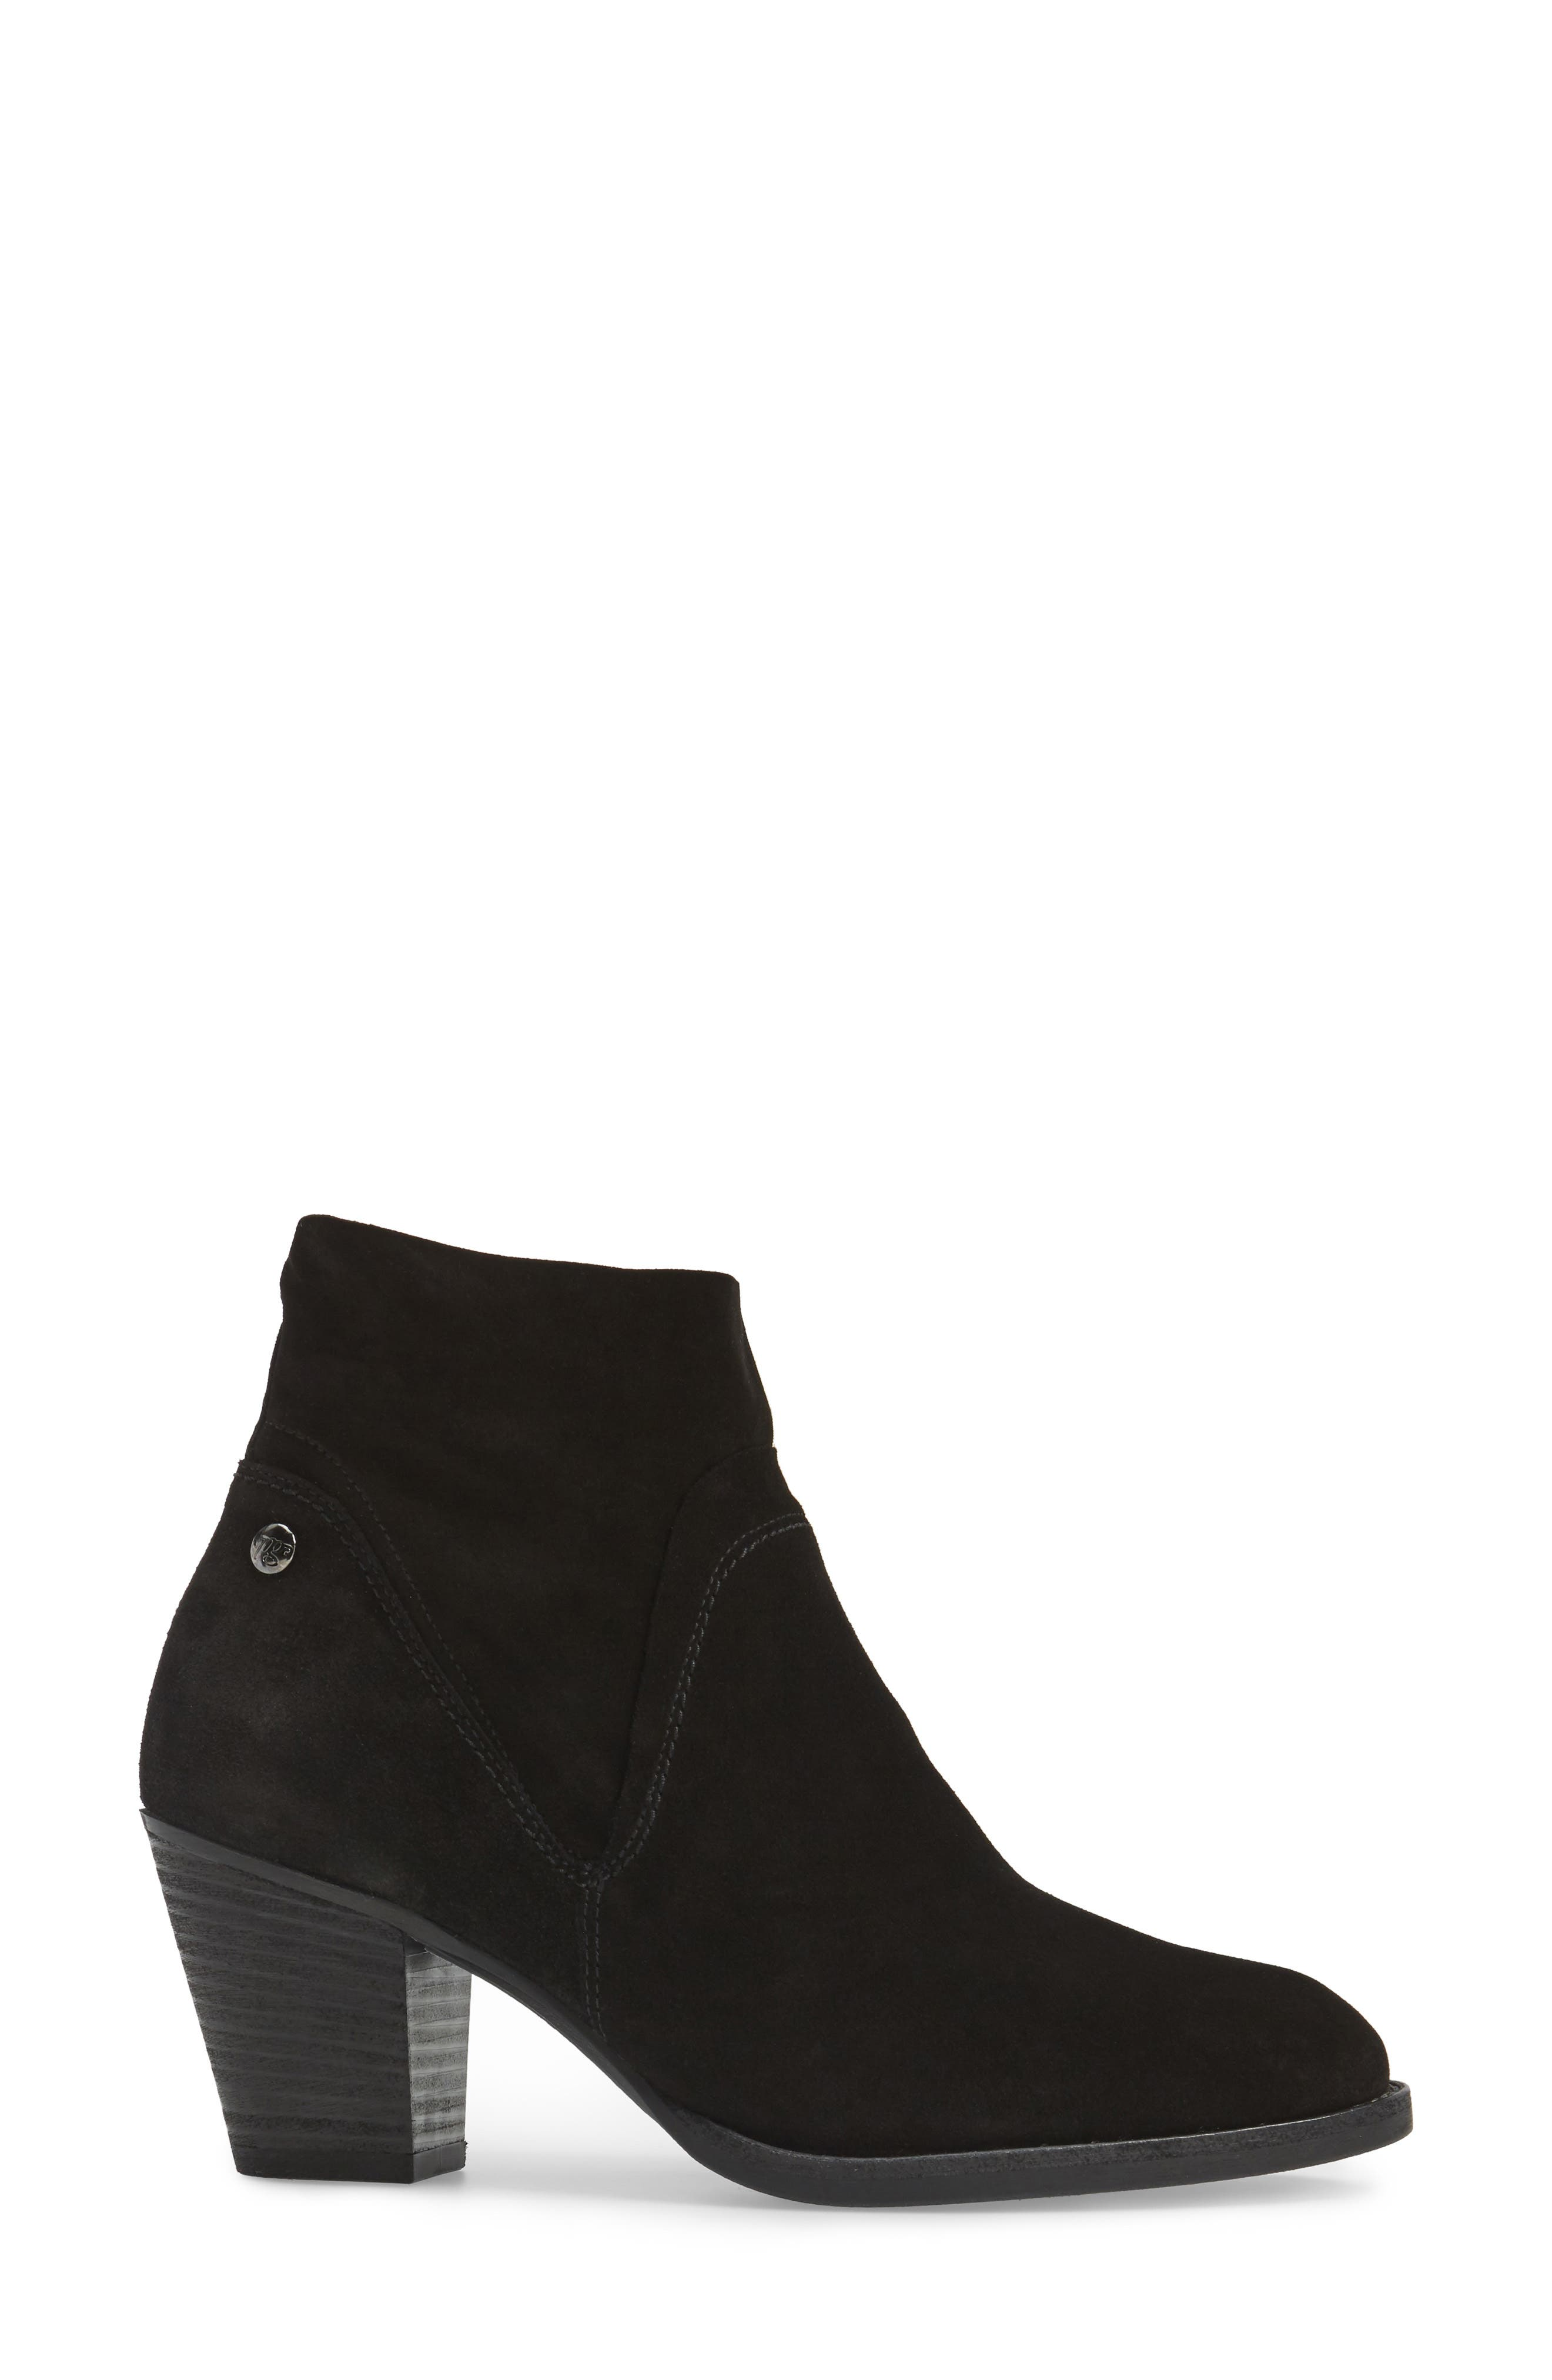 Nora Water Resistant Bootie,                             Alternate thumbnail 3, color,                             003